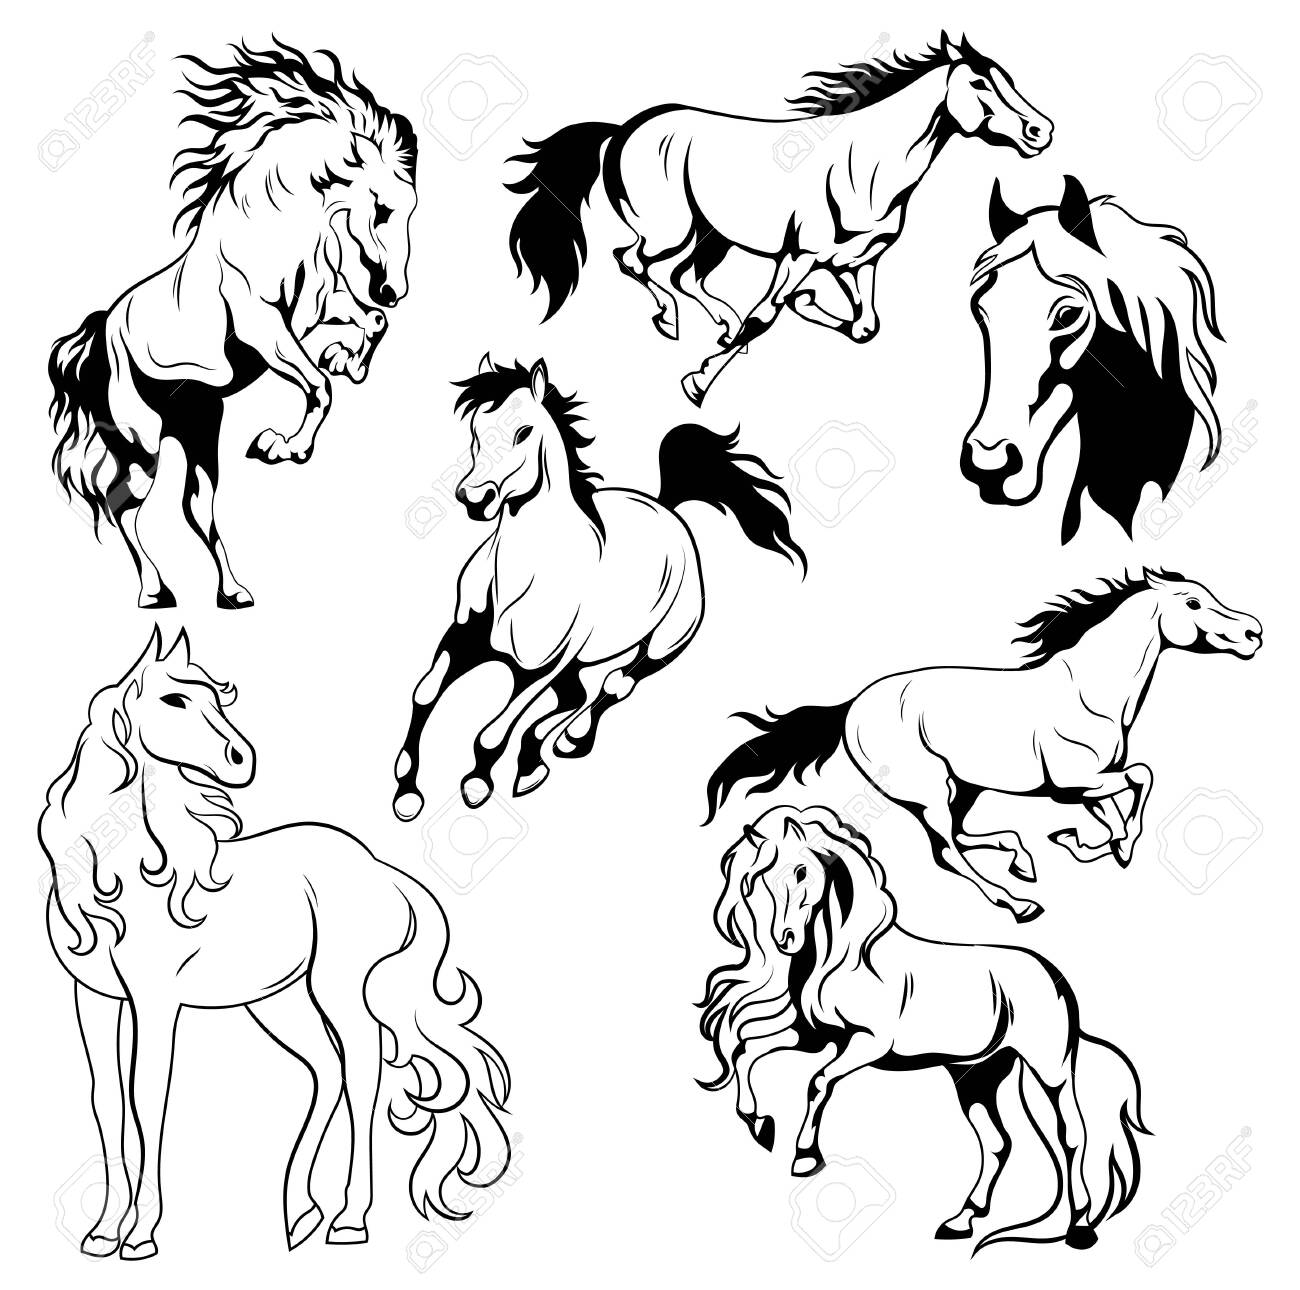 Running Horse Black And White Vector Illustration Of Running Royalty Free Cliparts Vectors And Stock Illustration Image 130641272